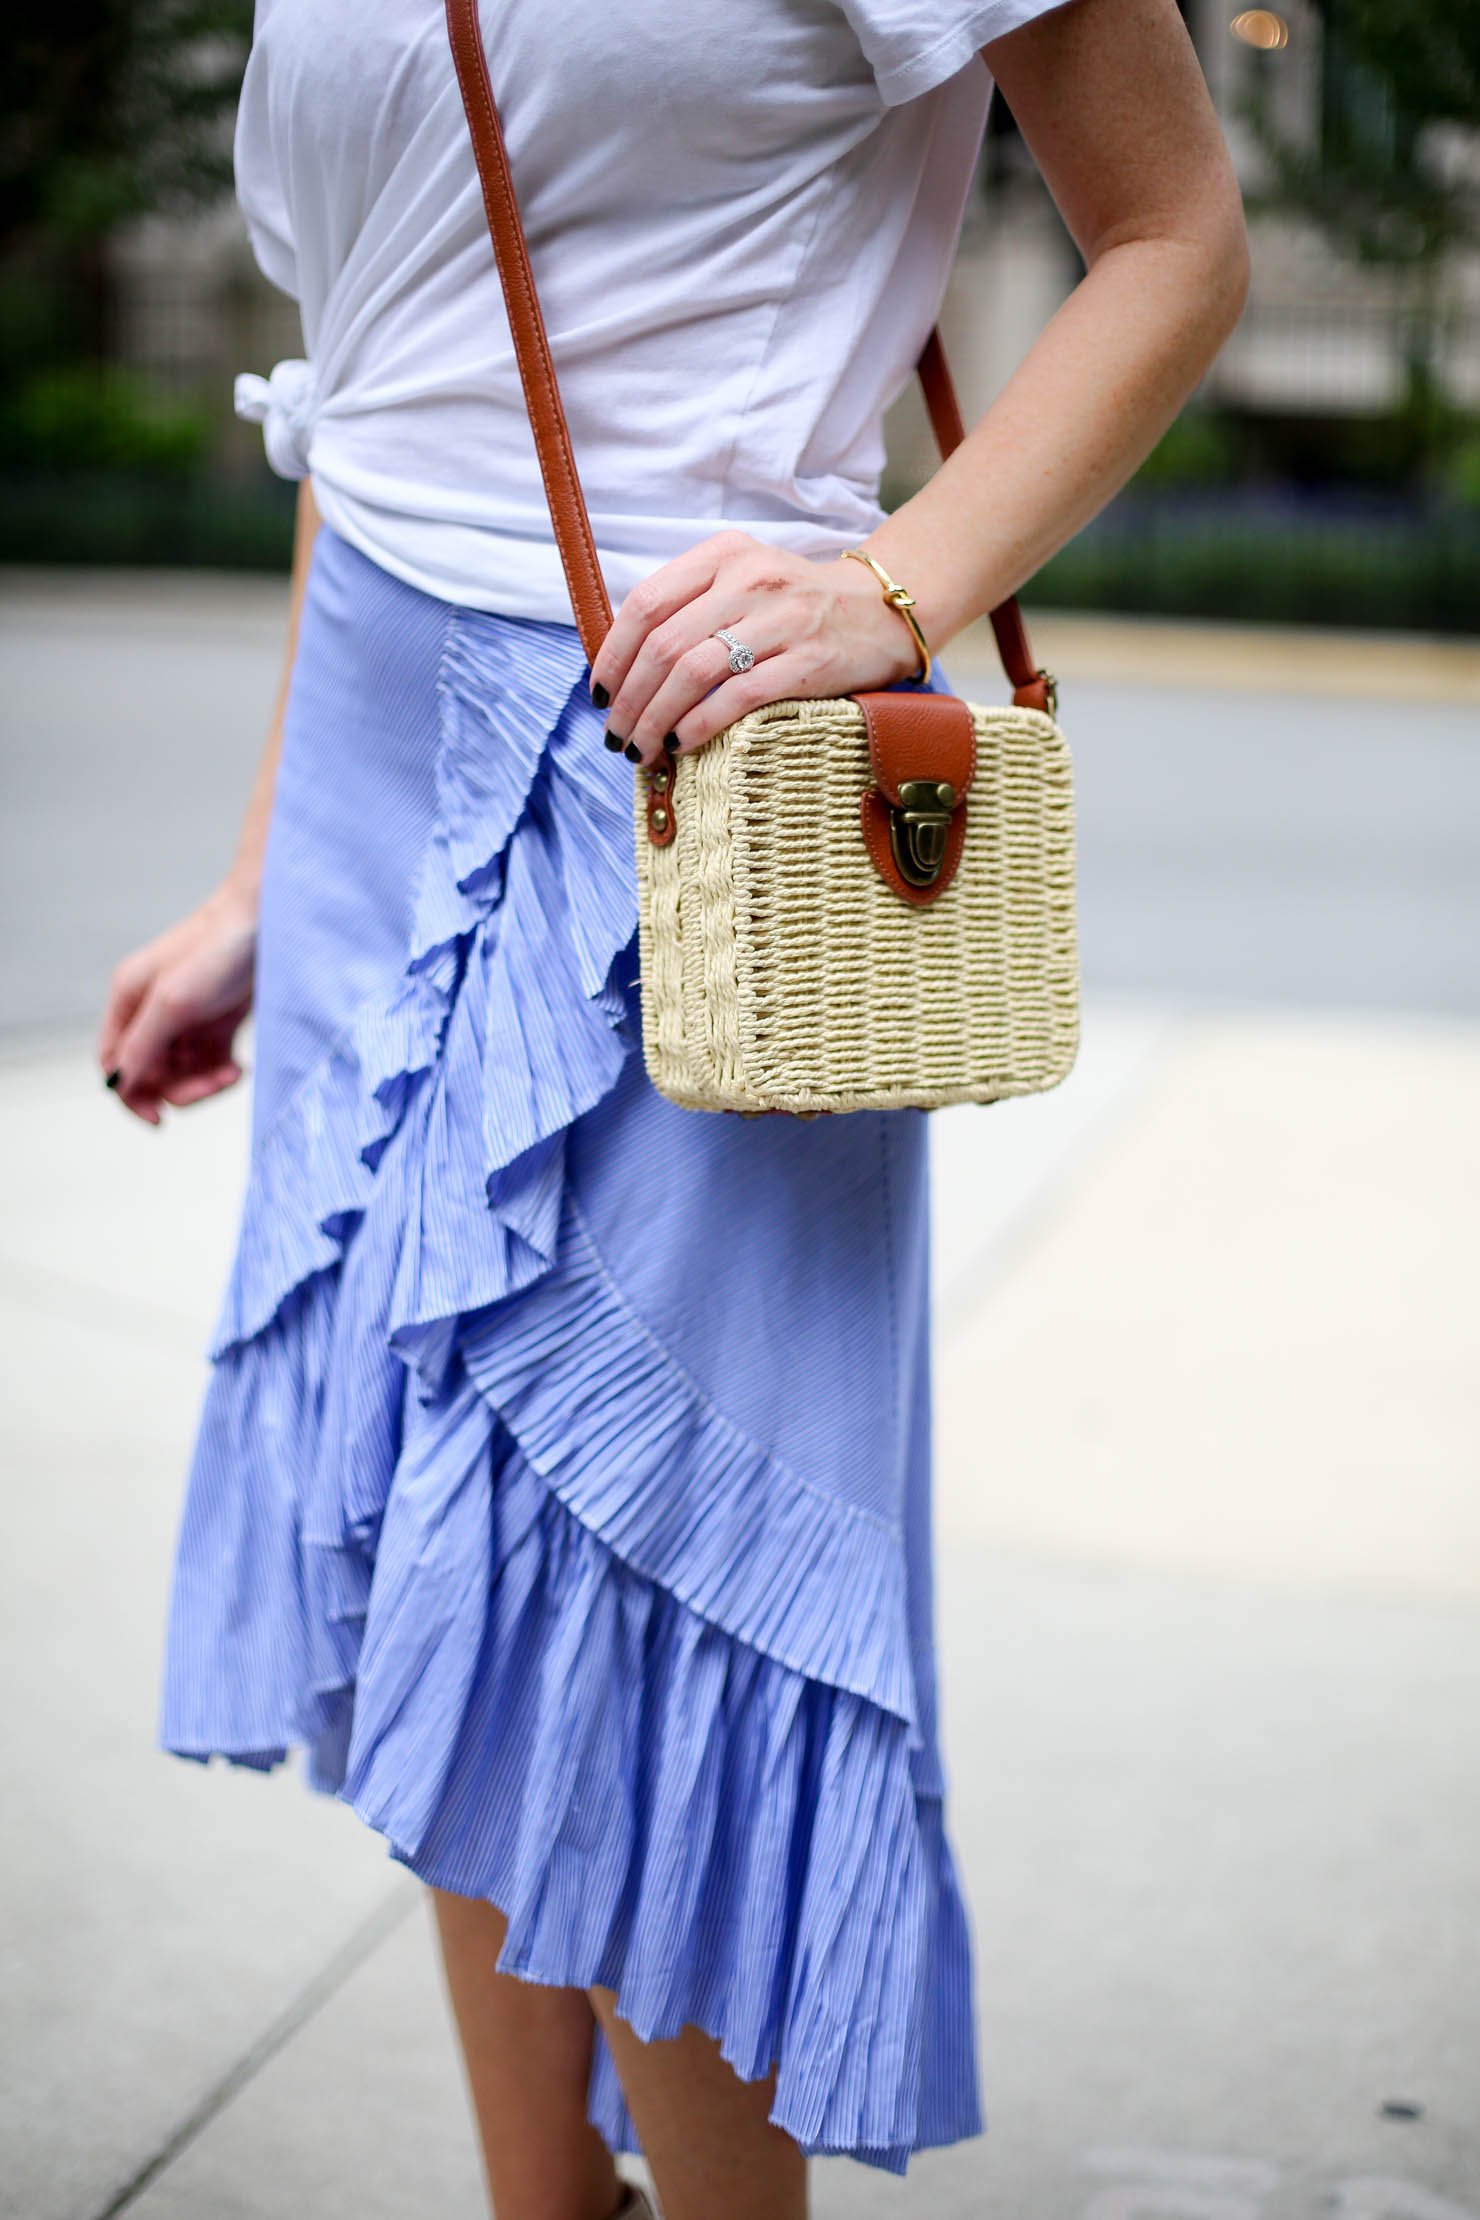 frilled skirt, ruffle tiered frill hem skirt, blue stripe the most feminine skirt midi skirt, casual meets dressy frills and a white tee, favorite summer outfit